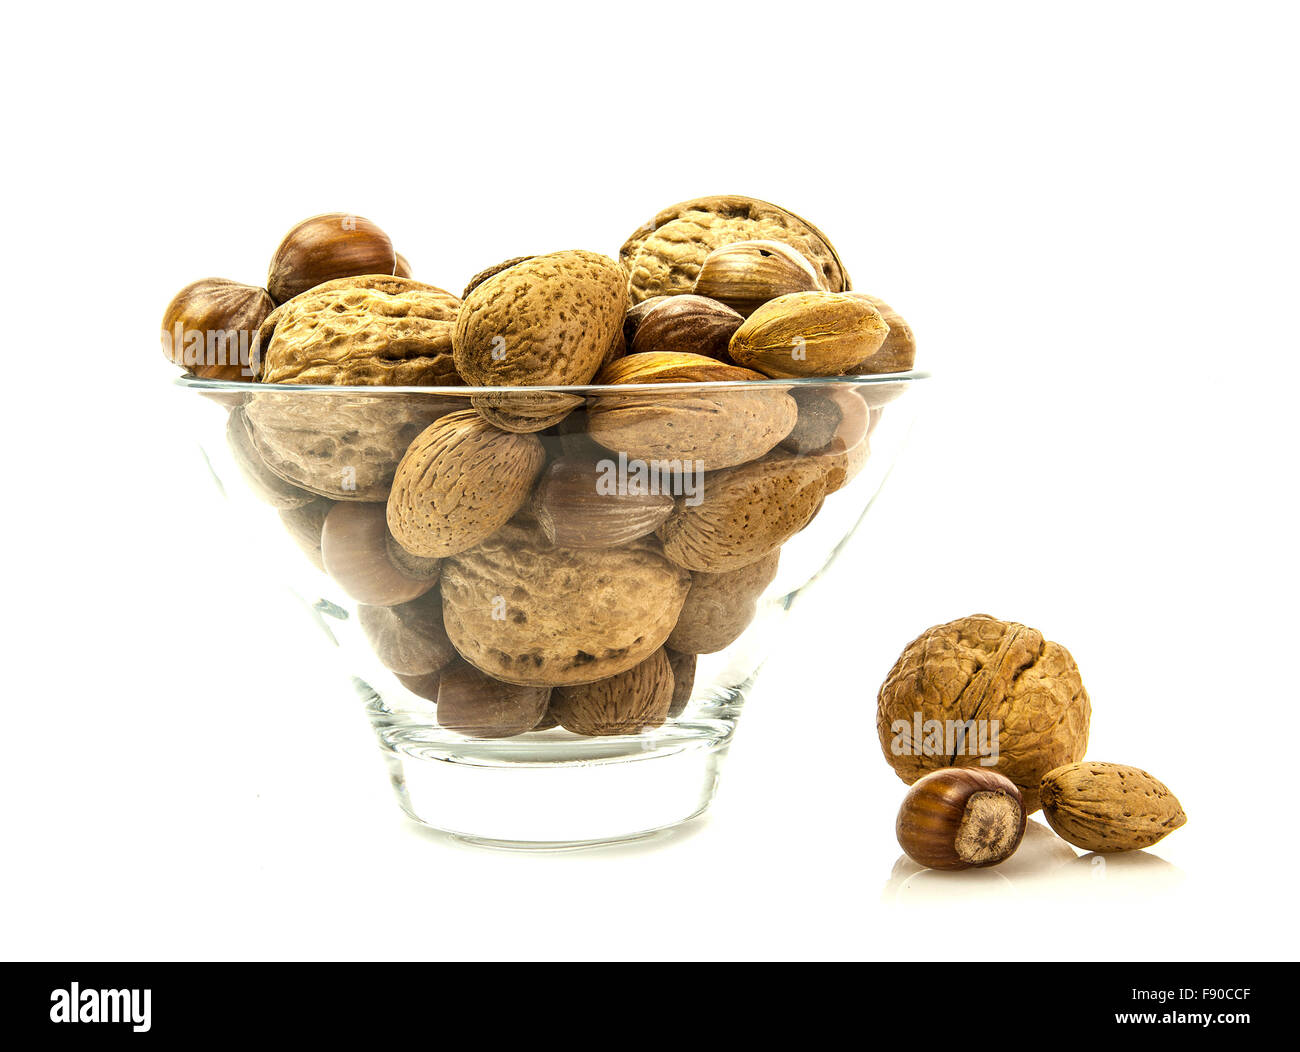 Mixed Nuts in a glass bowl on a white background - Stock Image